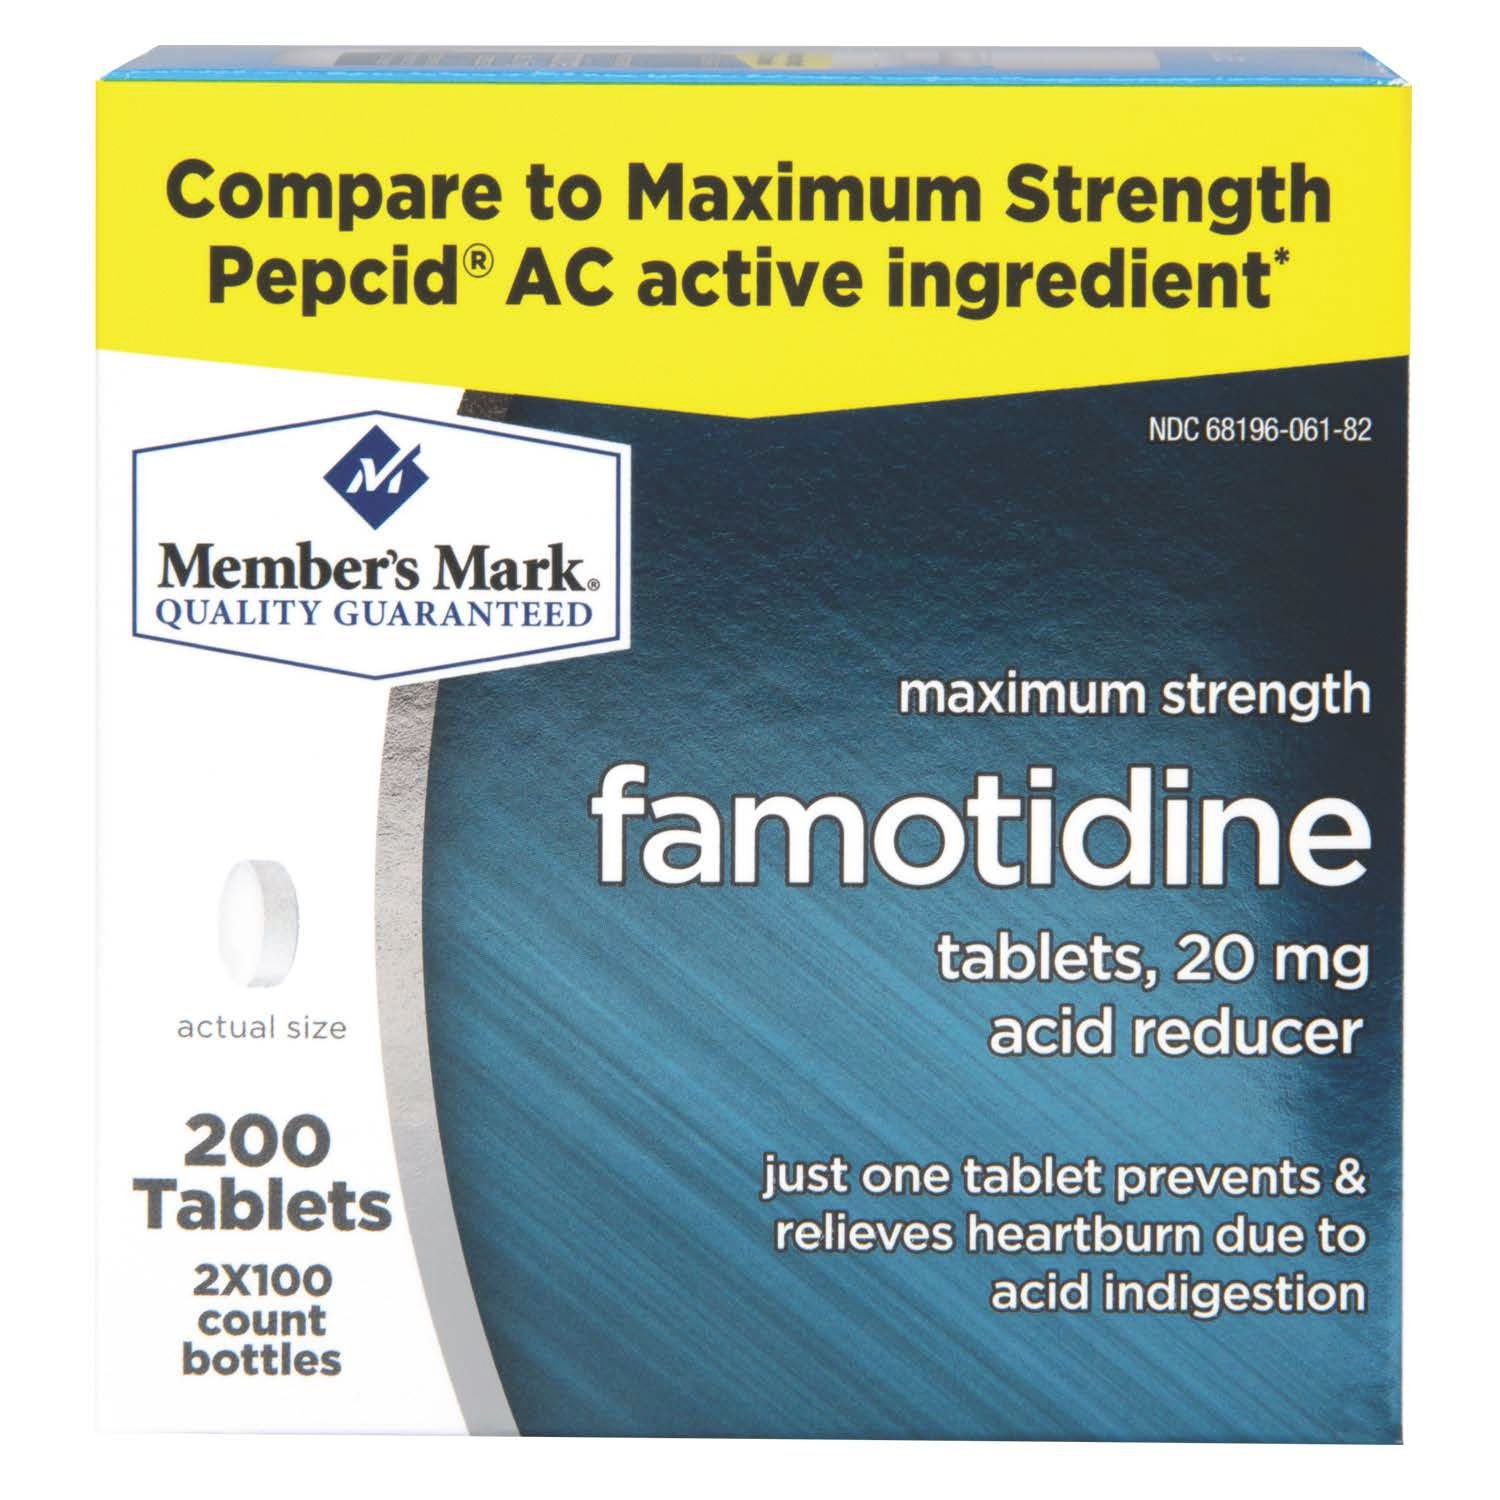 Member's Mark Maximum Strength 20mg Famotidine Acid Reducer - 200 Ct.